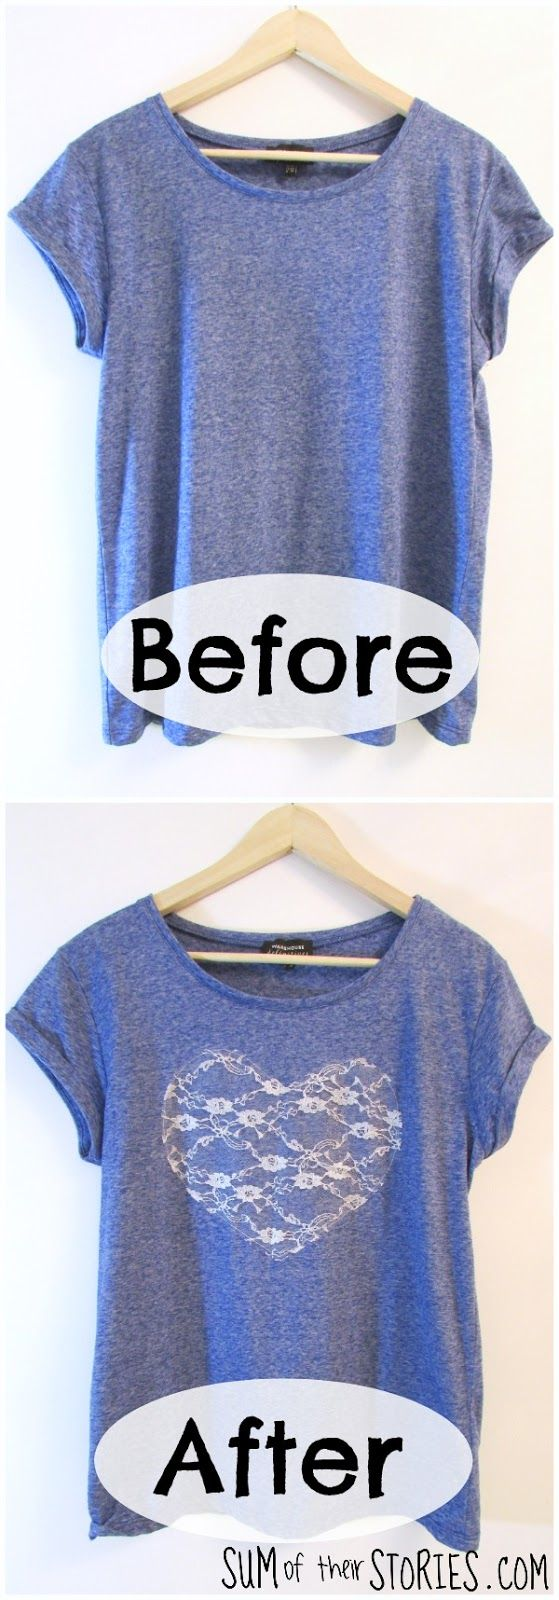 Lace Heart T shirt Refashion via @jsumoftheirstor #DIDI